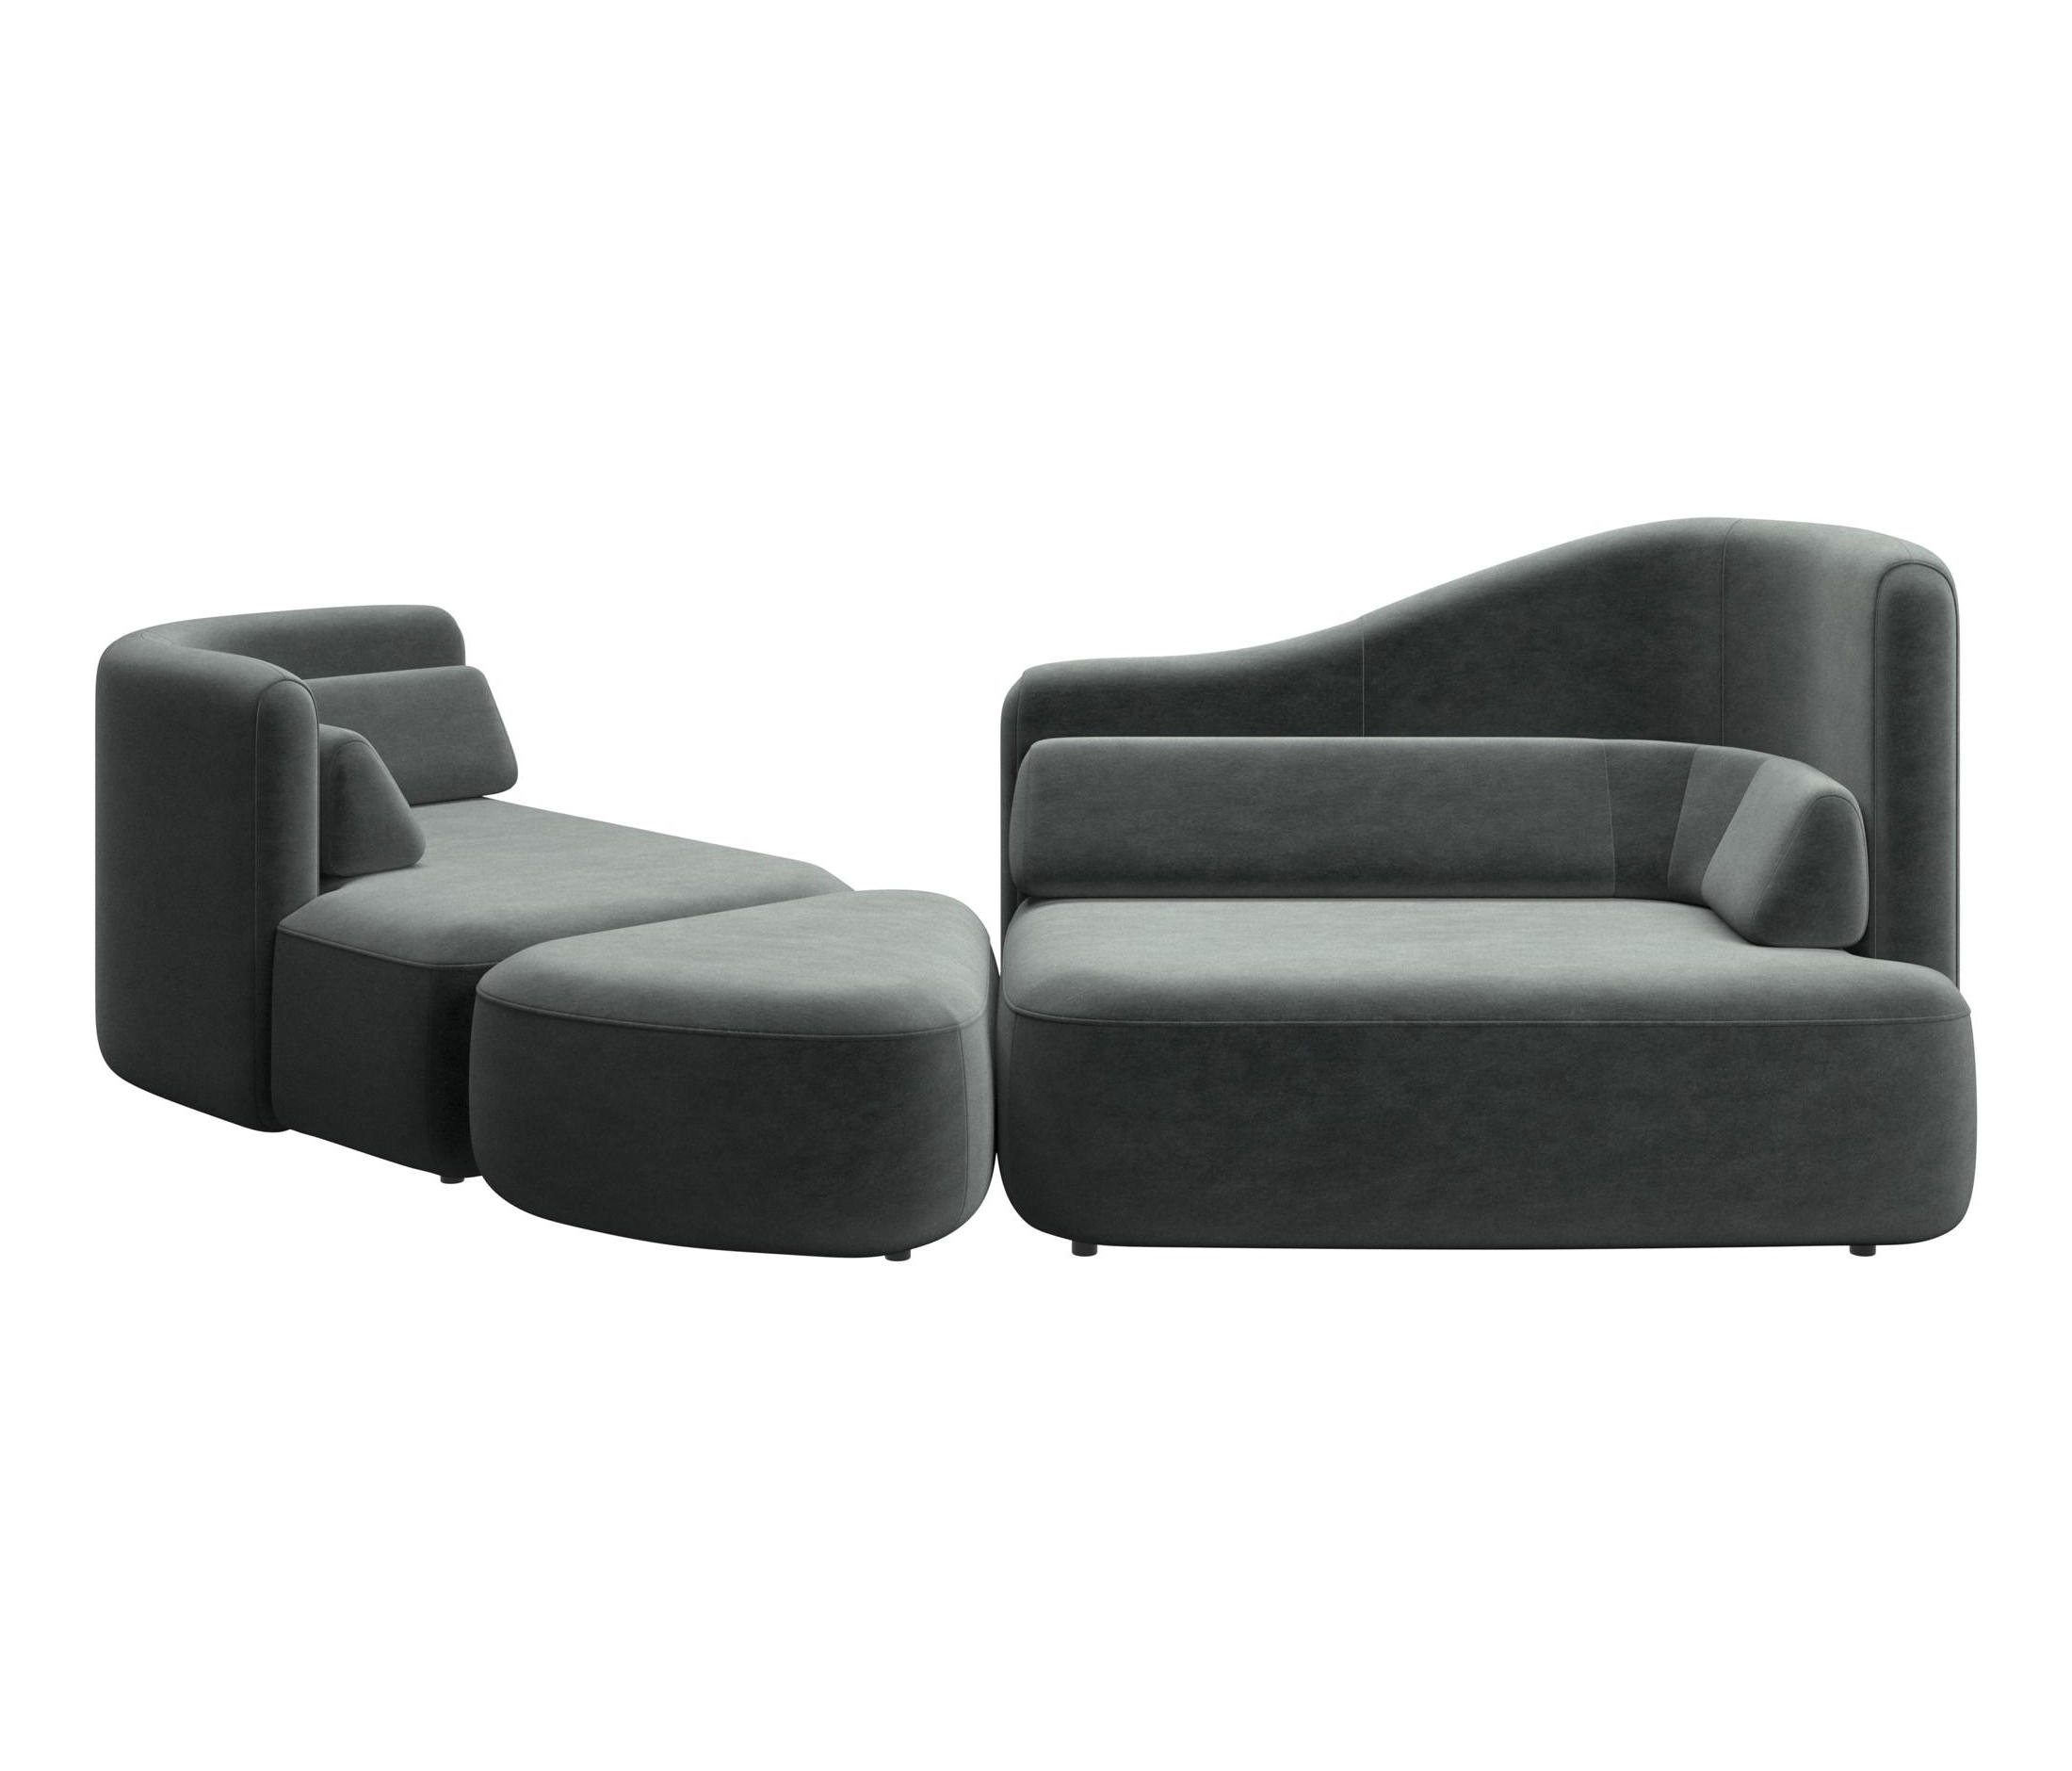 Ottawa Sofa Ot13 Sofas From Boconcept Architonic